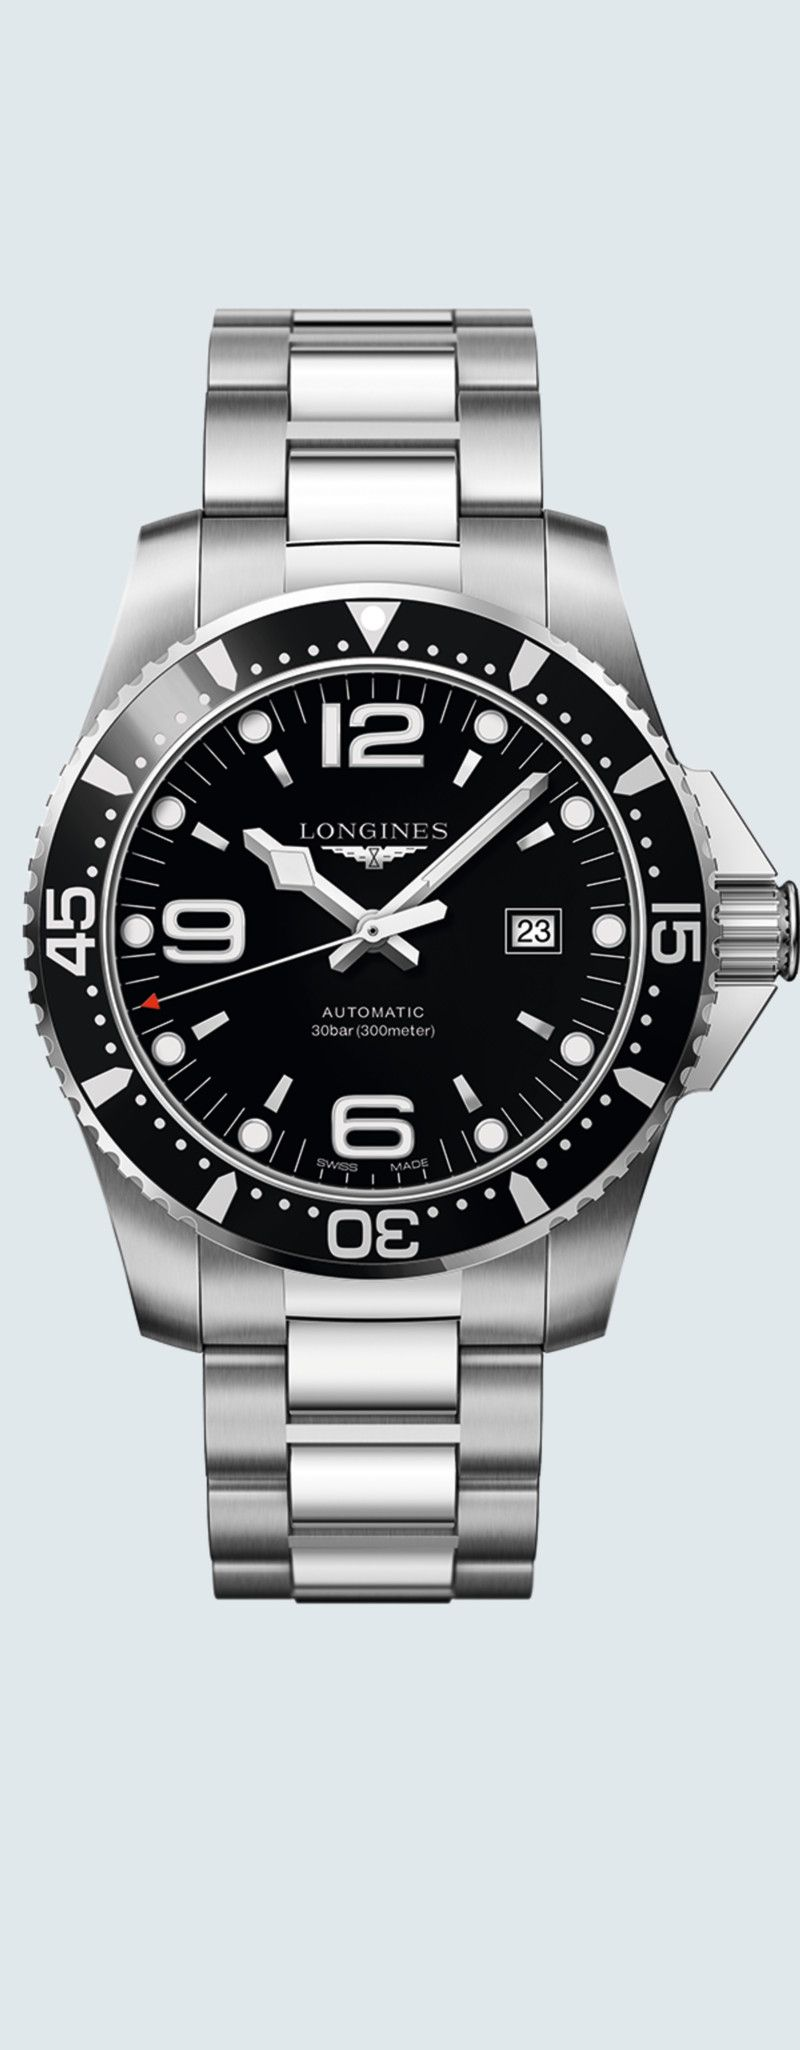 44.00 mm Stainless steel case with Sunray black dial and Stainless steel strap - case zoom view